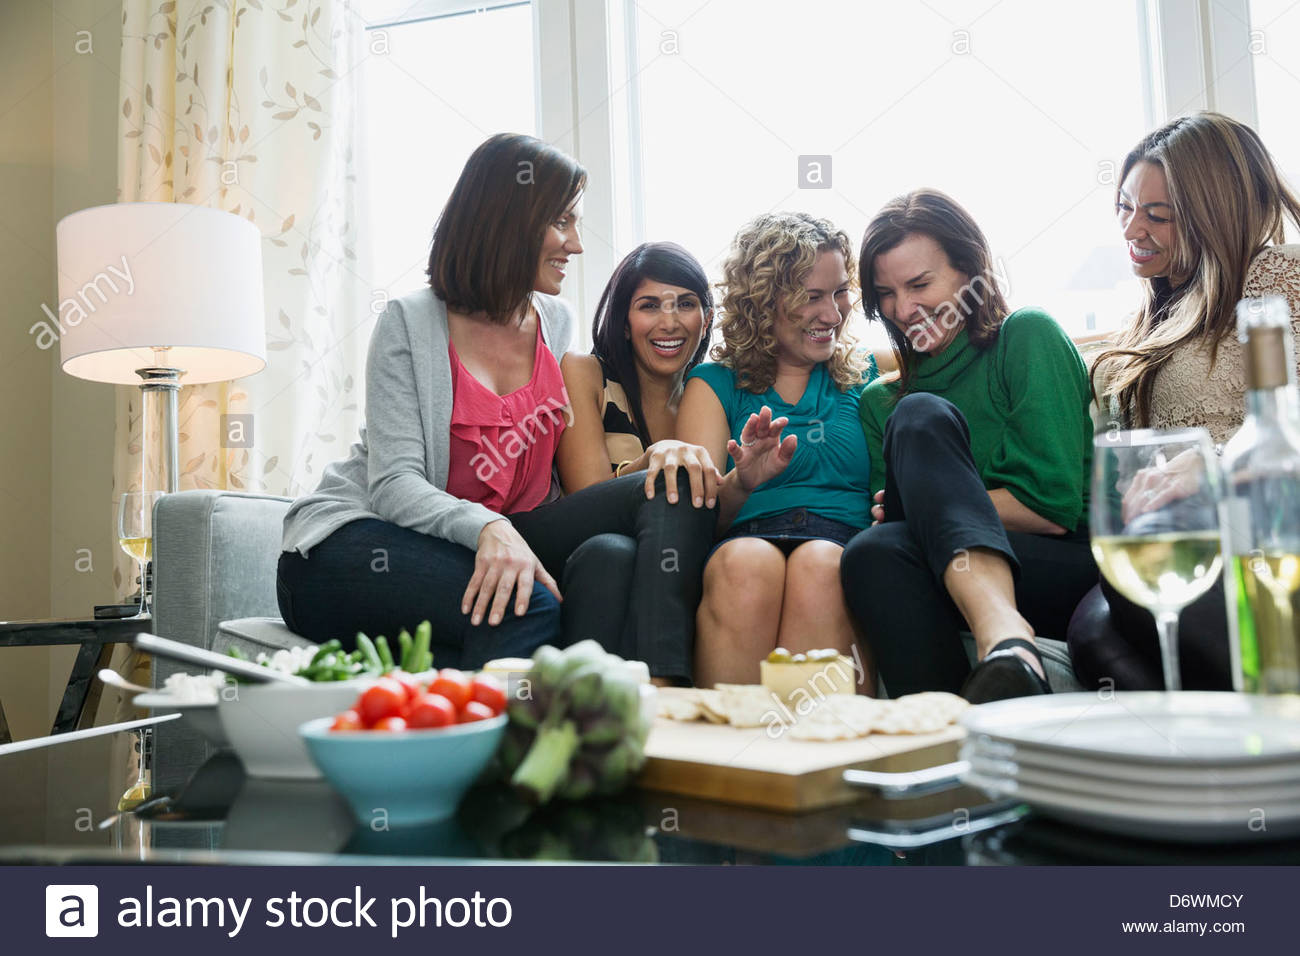 Portrait of happy woman with female friends enjoying house party - Stock Image